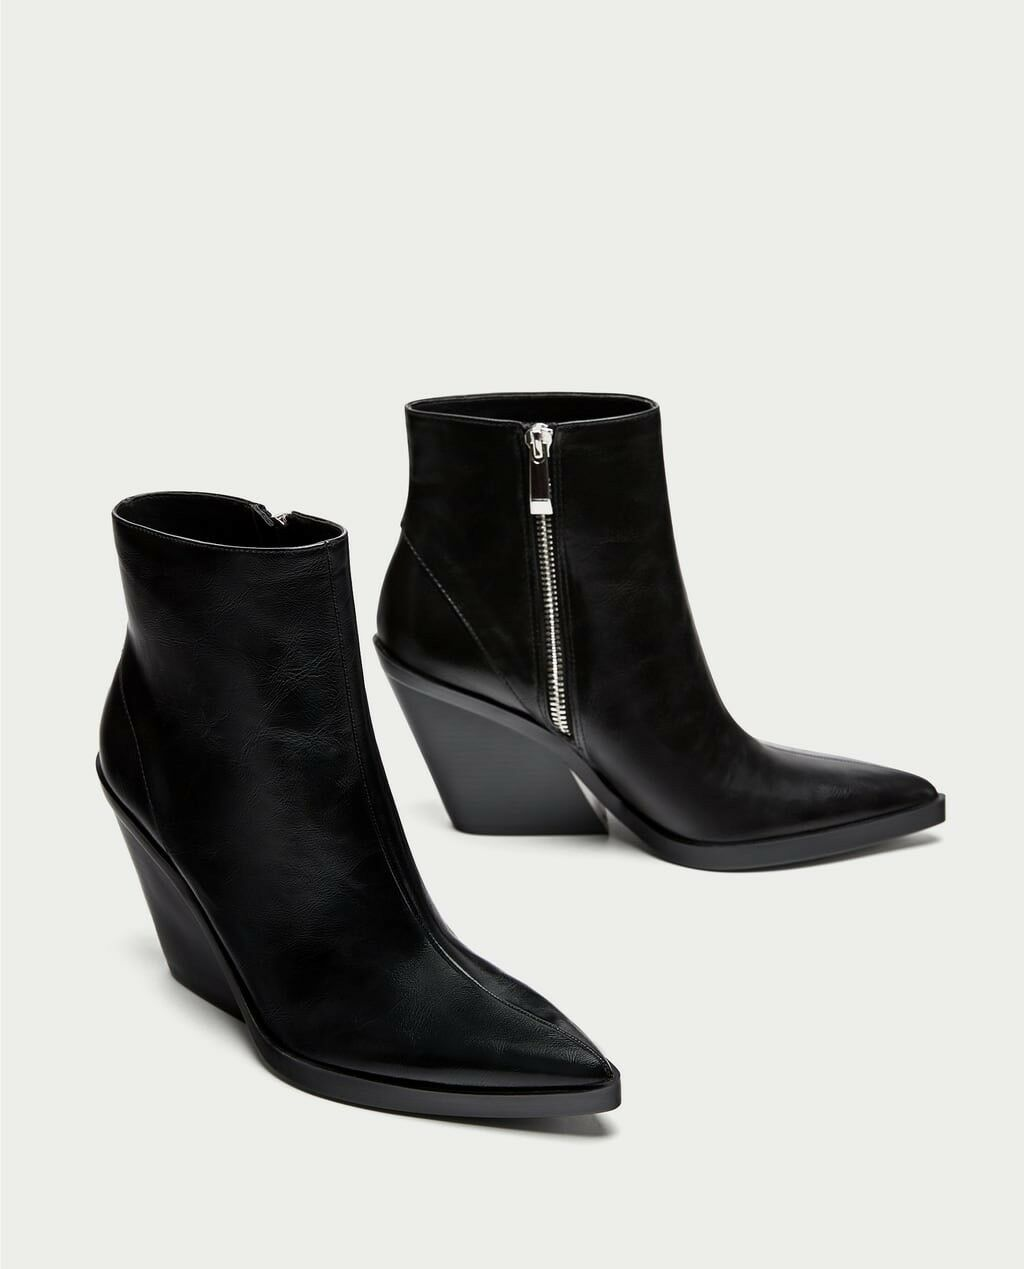 Zara AW17 Women Ankle Stiefel With Thick Sole EUR schuhes Size 8 EUR Sole 39 NWT f57543